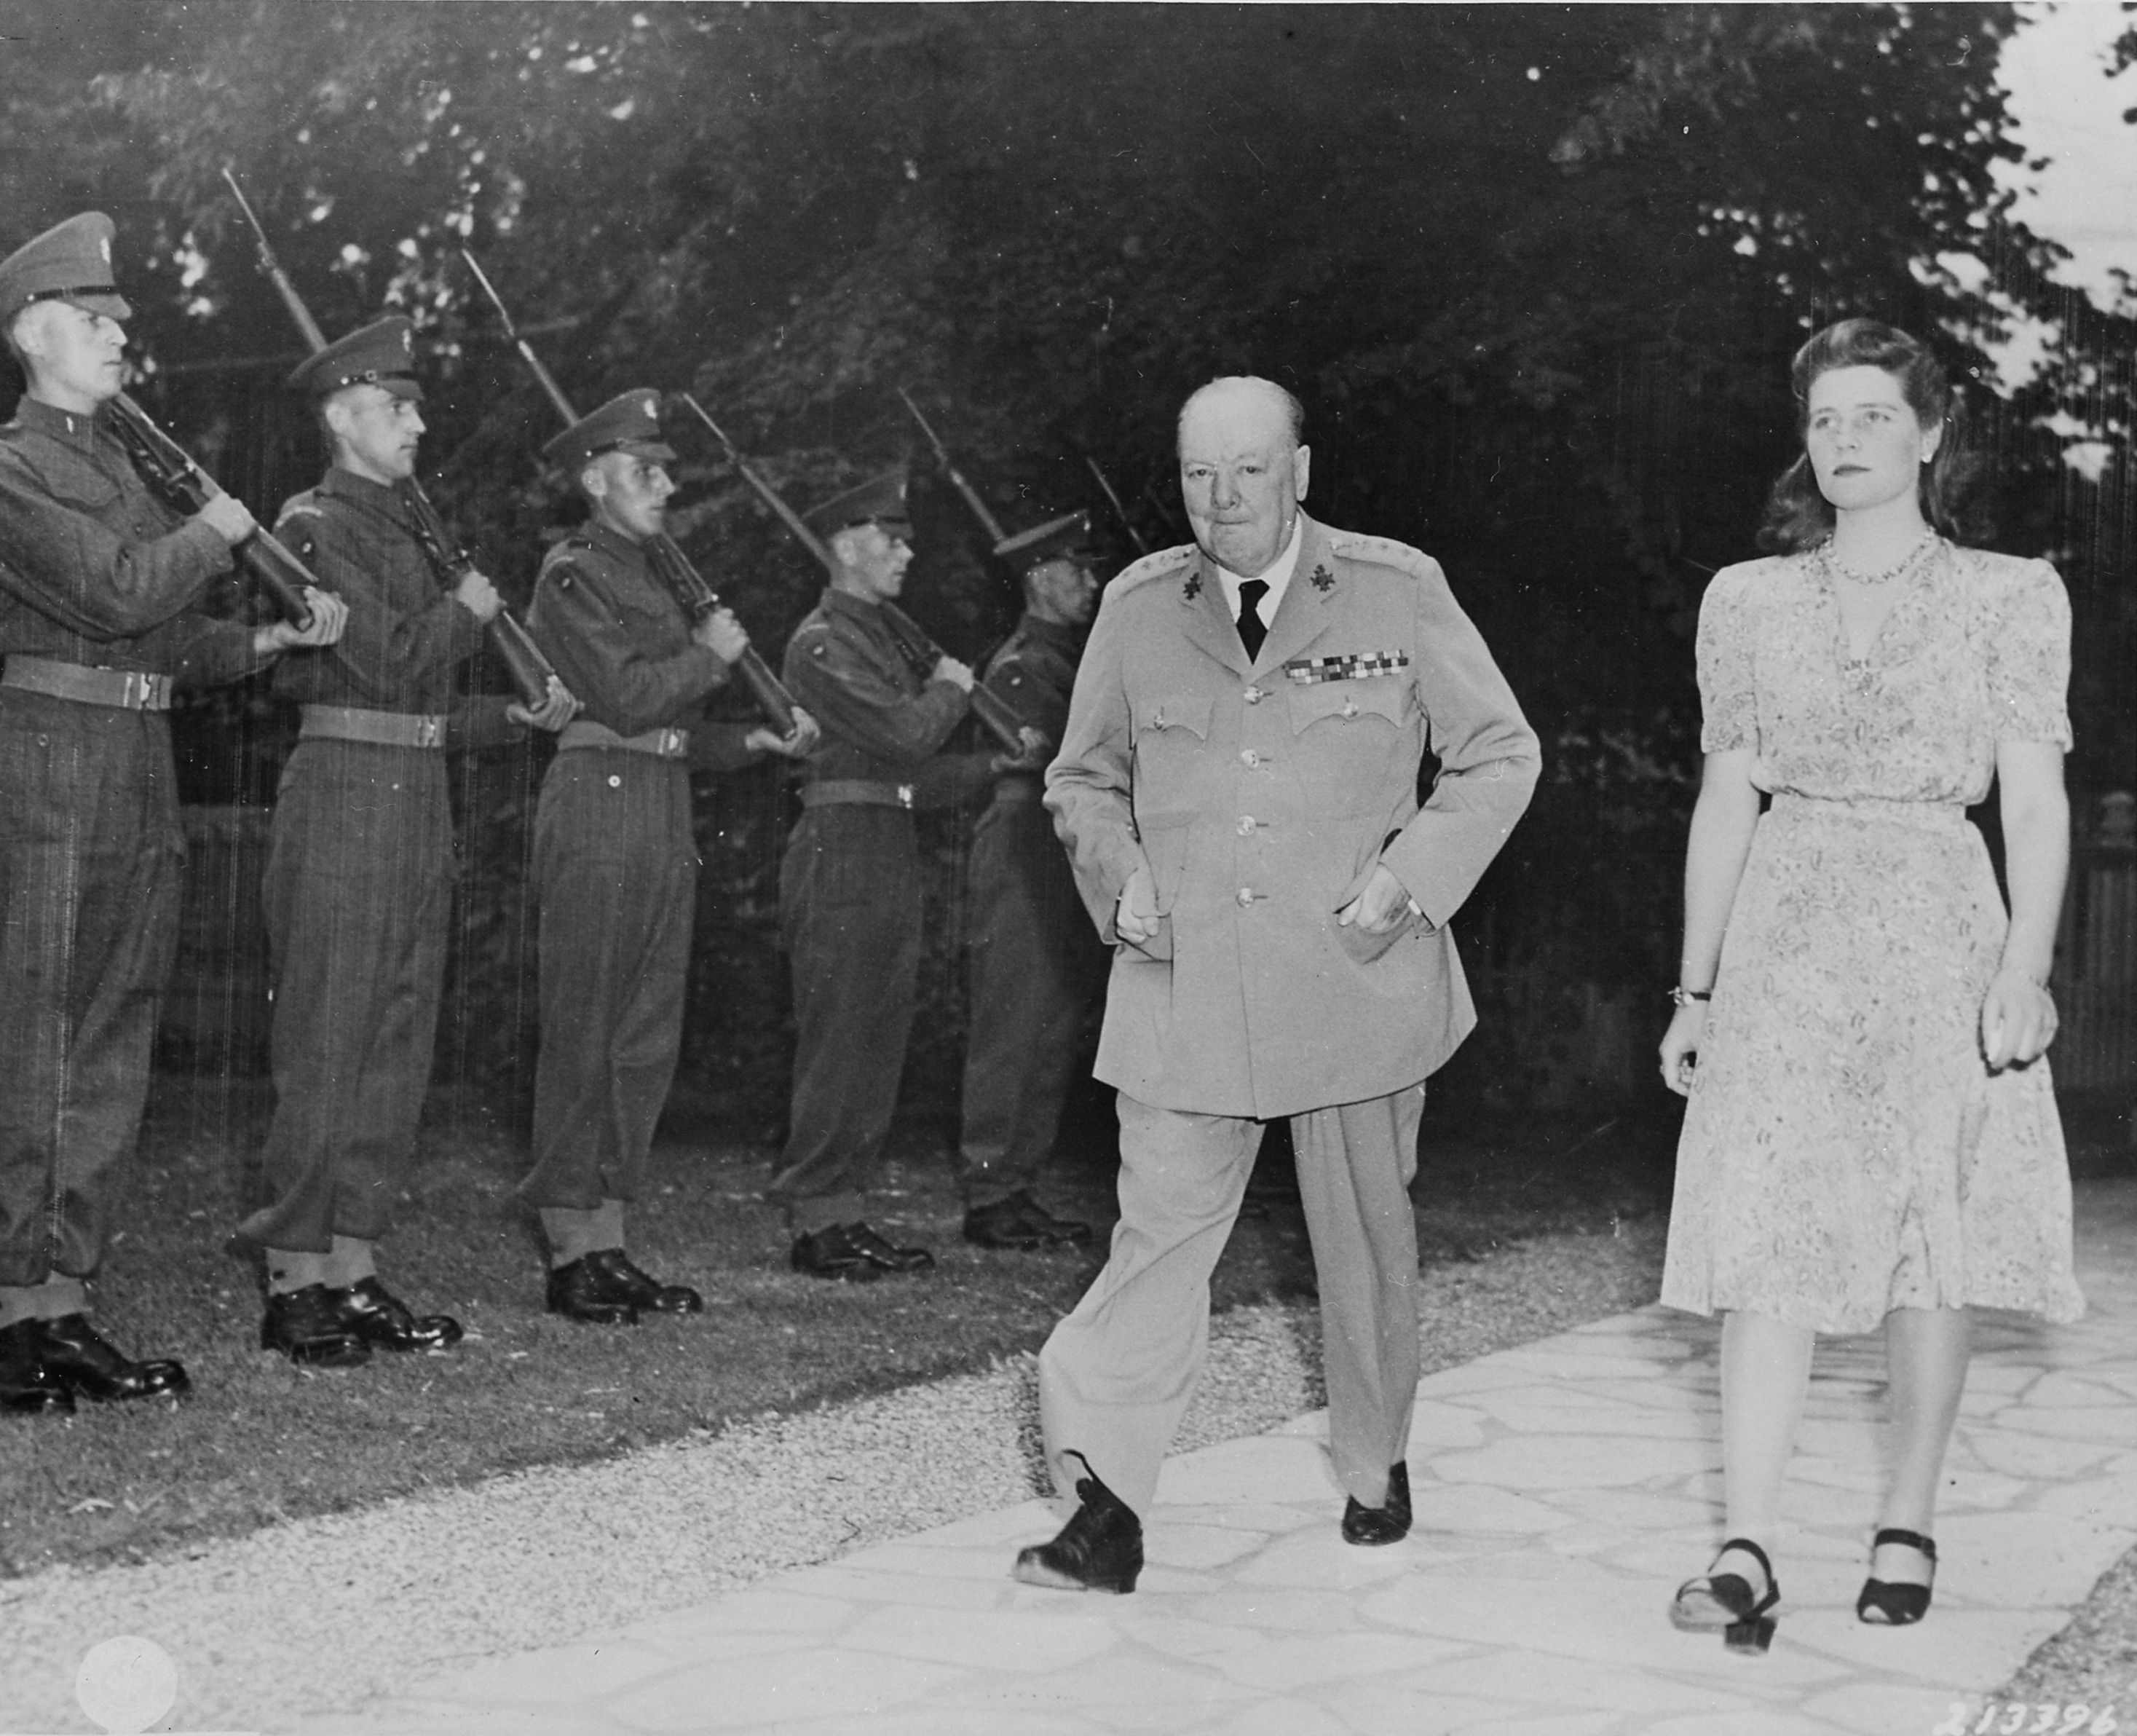 British Prime Minister Winston Churchill and his daughter Mary Churchill walking in the garden of their residence during the Potsdam Conference, Germany, 23 Jul 1945; note British Scots Guards regiment honor guard. Source - United States National Archives